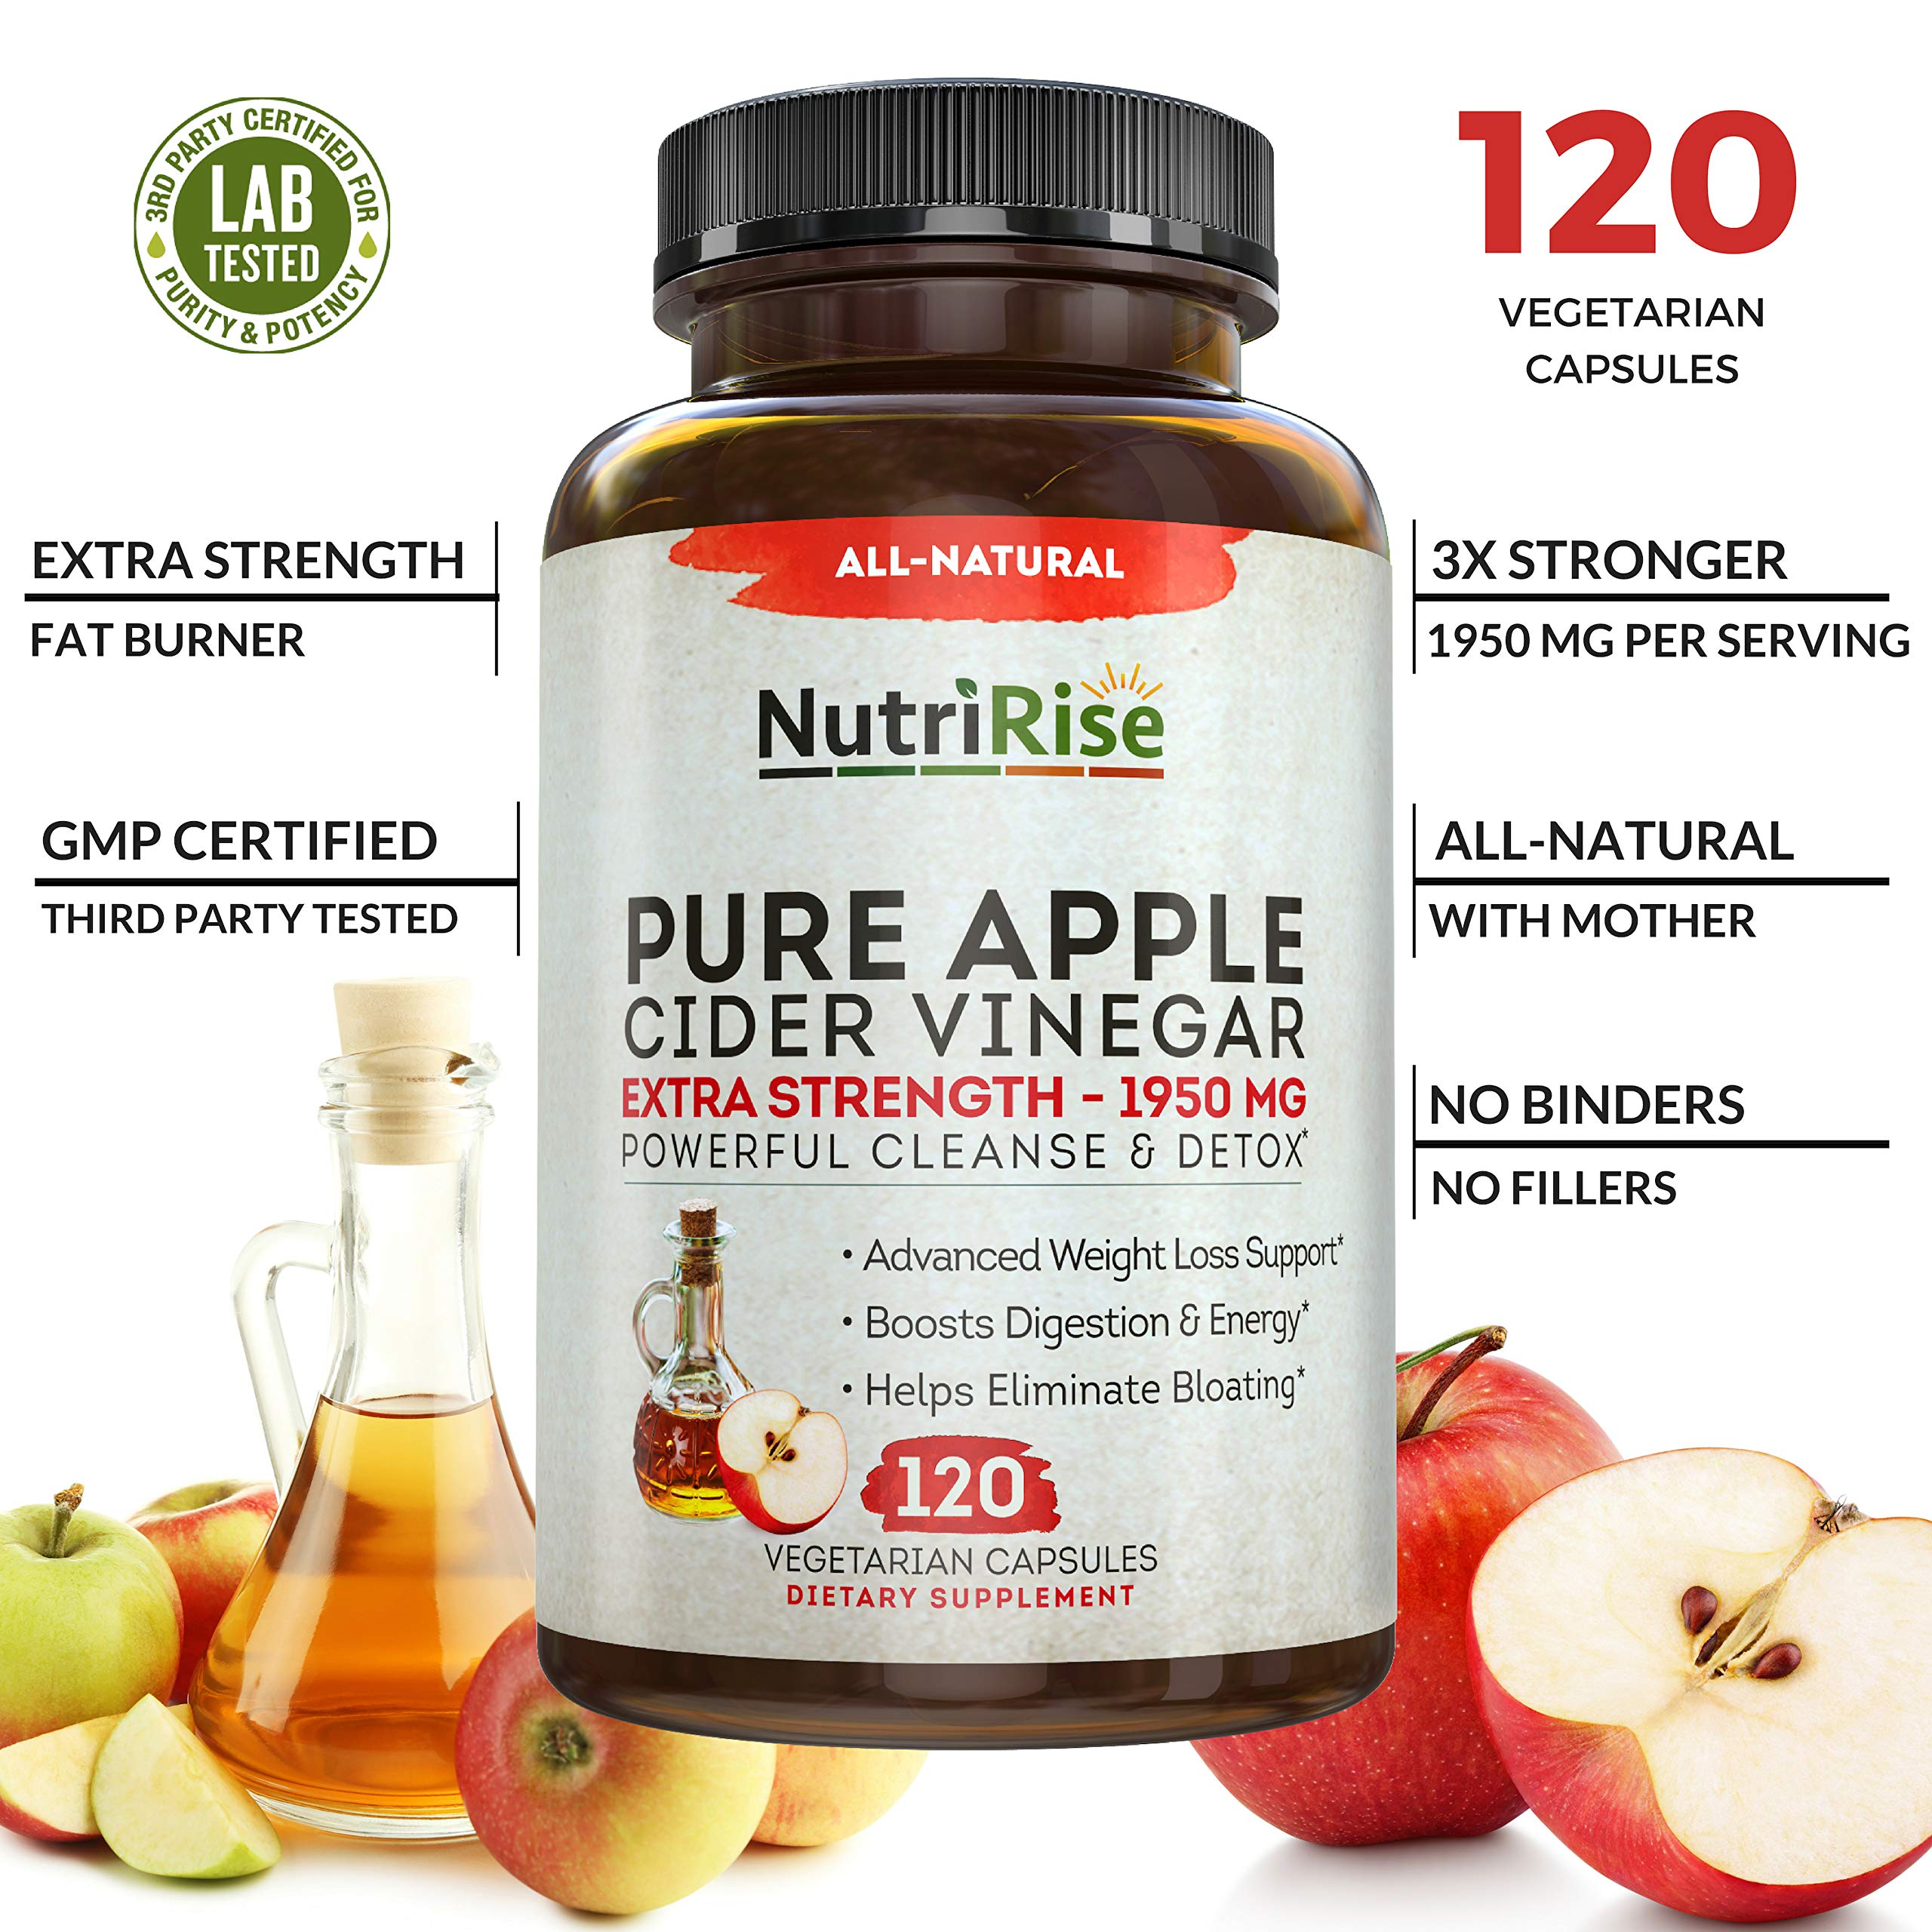 Apple Cider Vinegar Capsules for Weight Loss & Cleanse - 100% Pure Extra Strength 1950mg - 120 Natural Diet Pills for Women & Men for Bloating & Constipation Relief, Digestion & Energy Boost by NutriRise (Image #6)